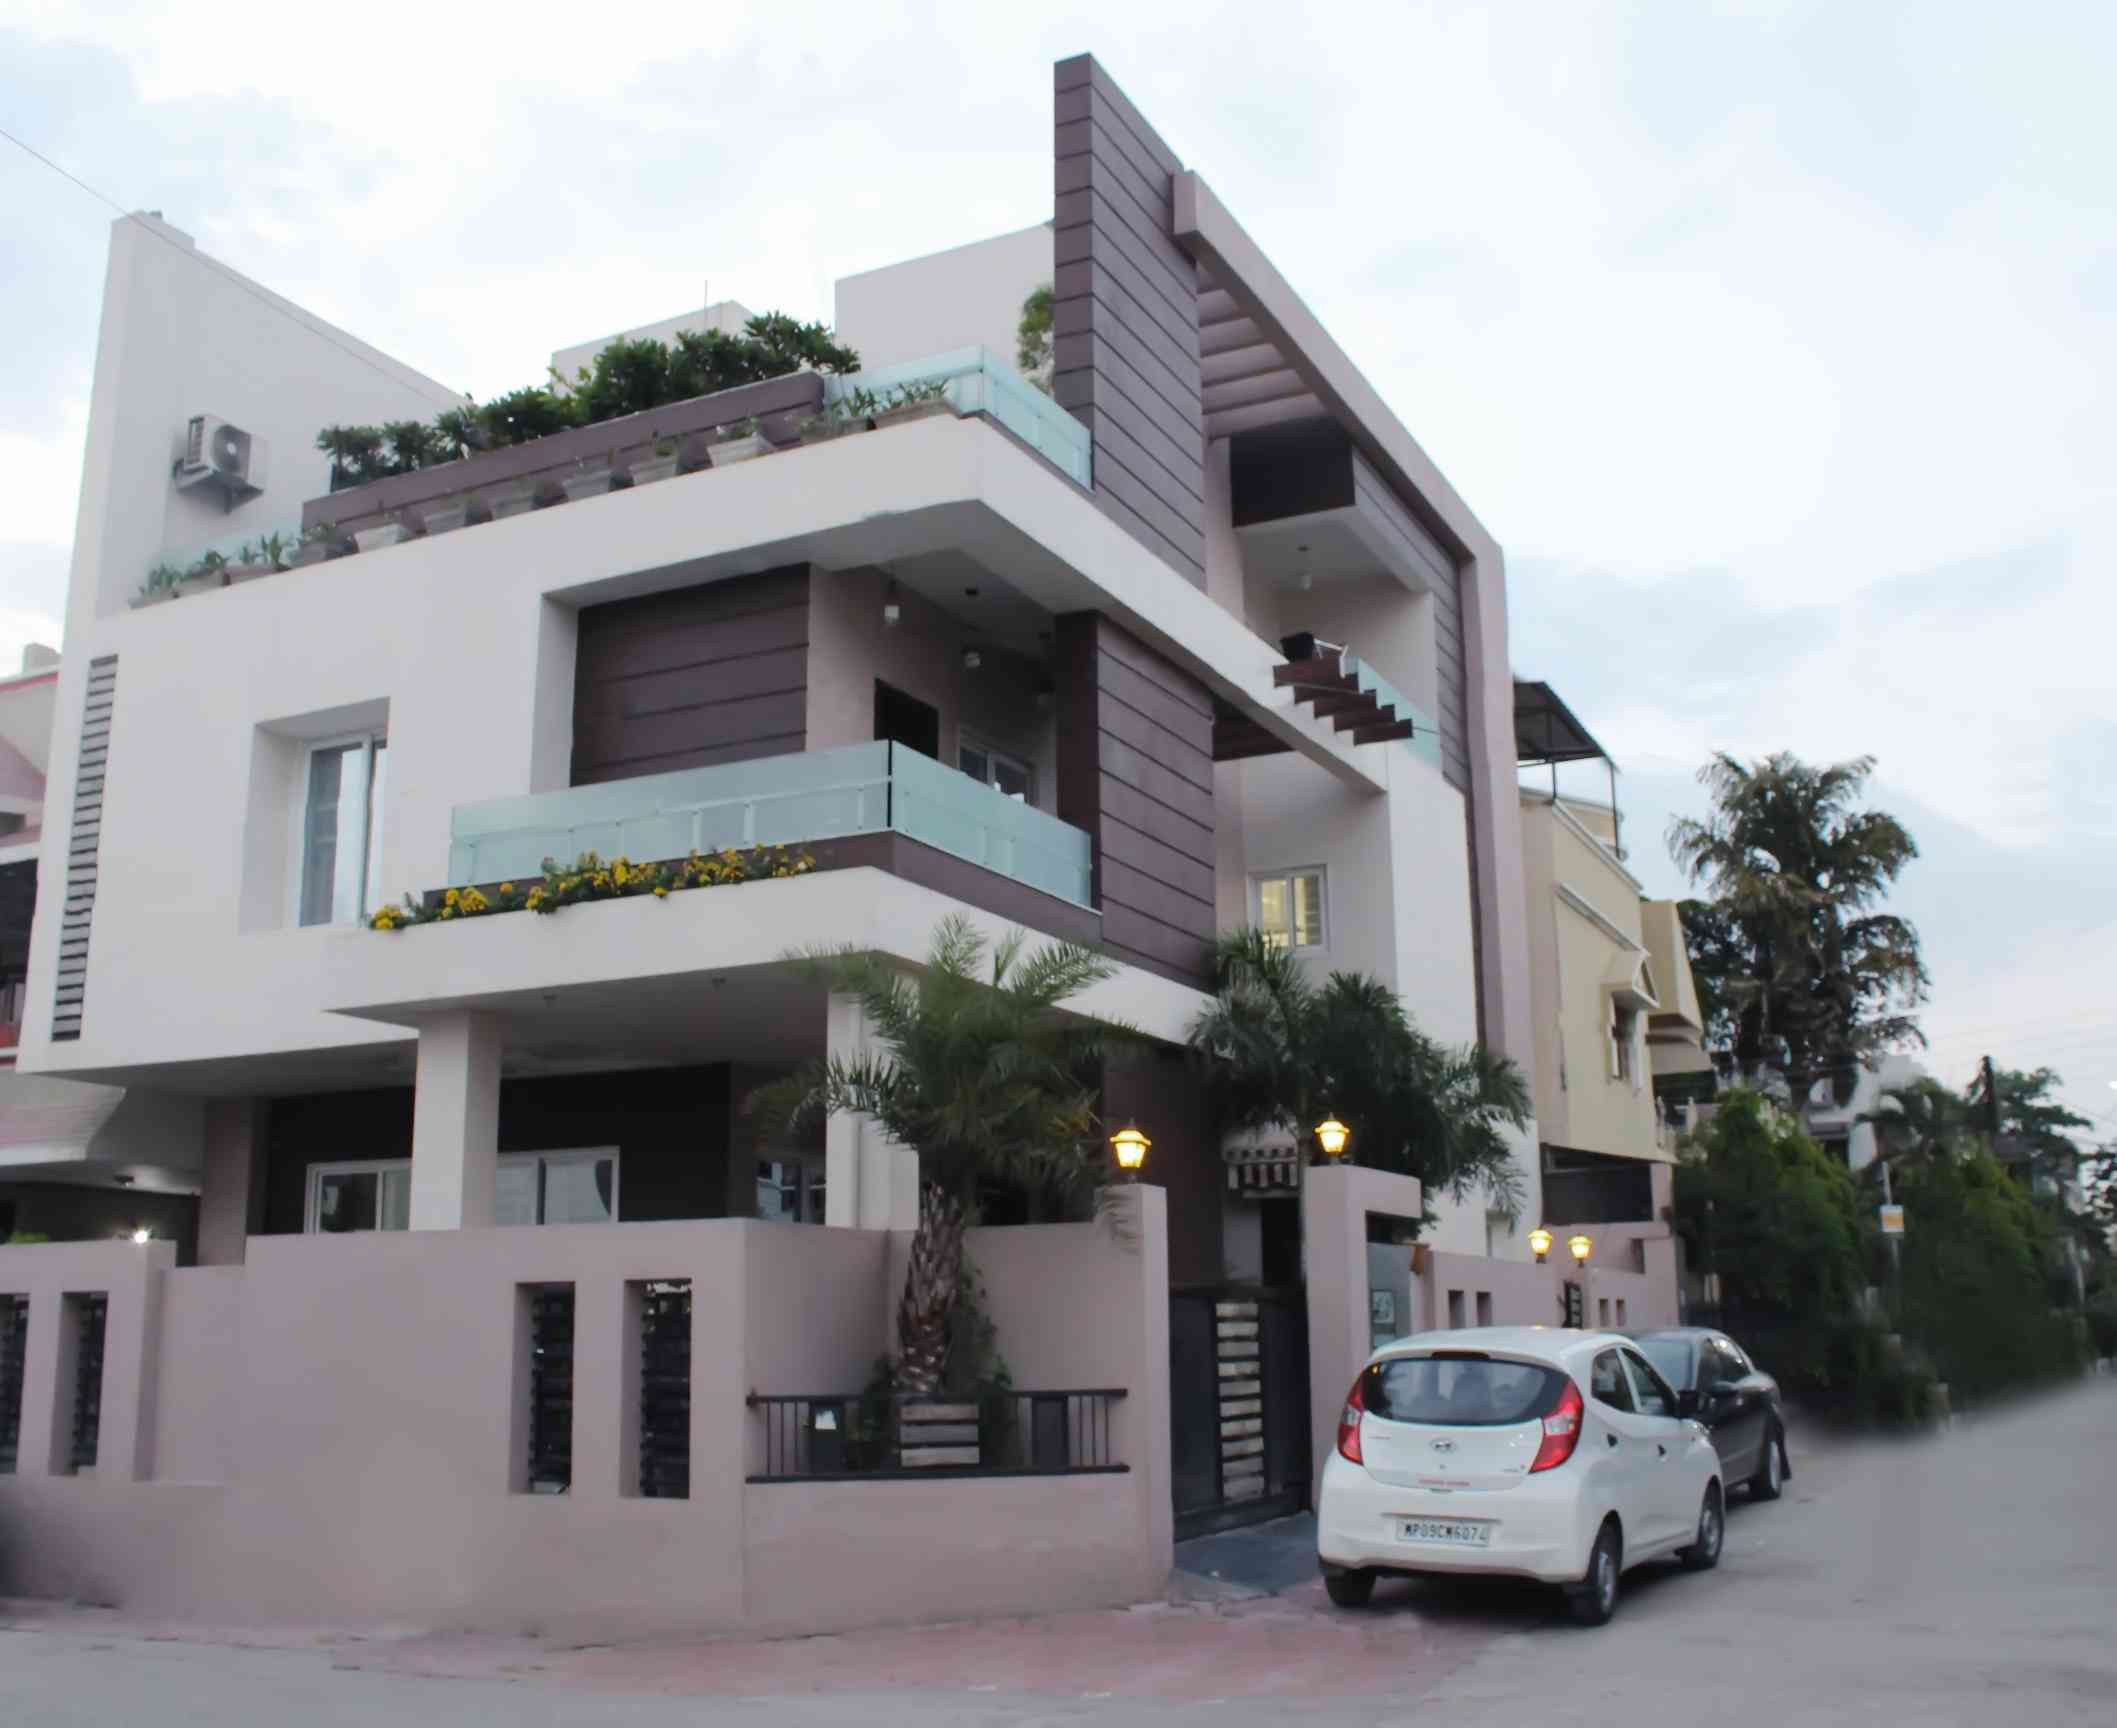 Home front design in chandigarh house design ideas House photos gallery